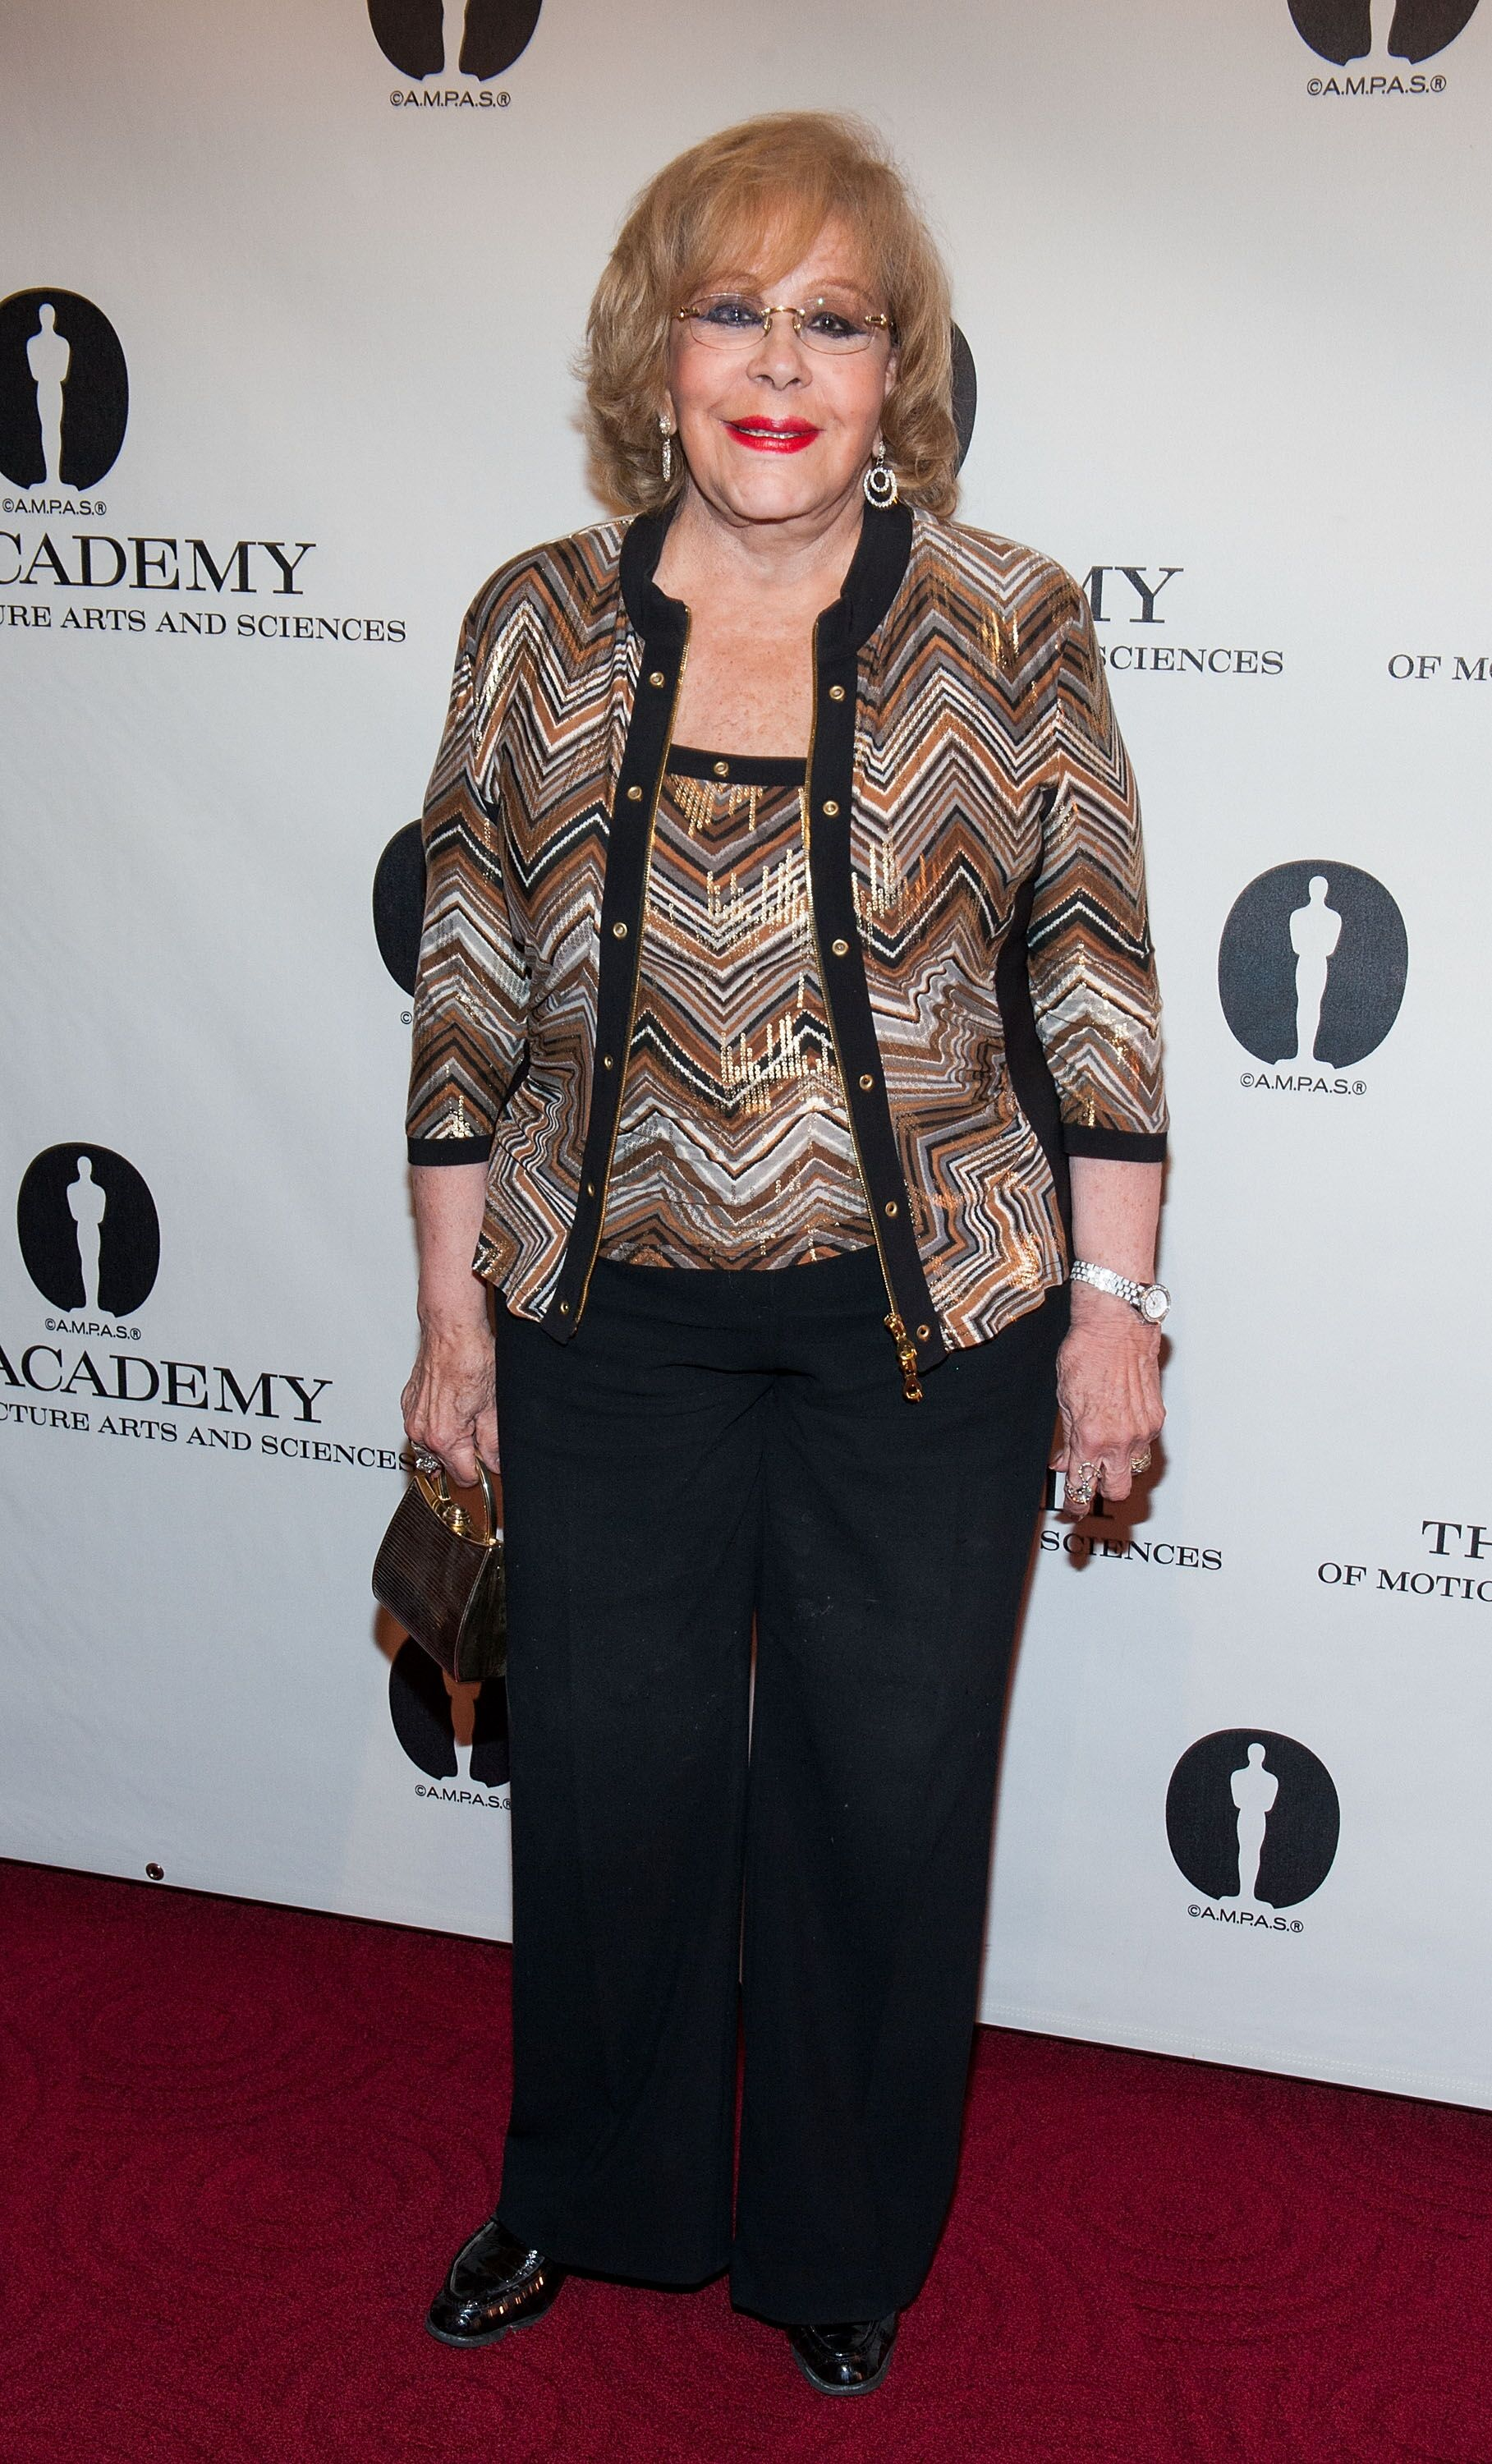 Silvia Pinal en el evento The Academy Of Motion Picture Arts And Sciences presenta Una Noche en Honor al cinematógrafo mexicano Gabriel Figueroa en el Teatro AMPAS Samuel Goldwyn en September de 2013 en Beverly Hills, California.. | Imagen: Getty Images/GlobalImagesUkraine